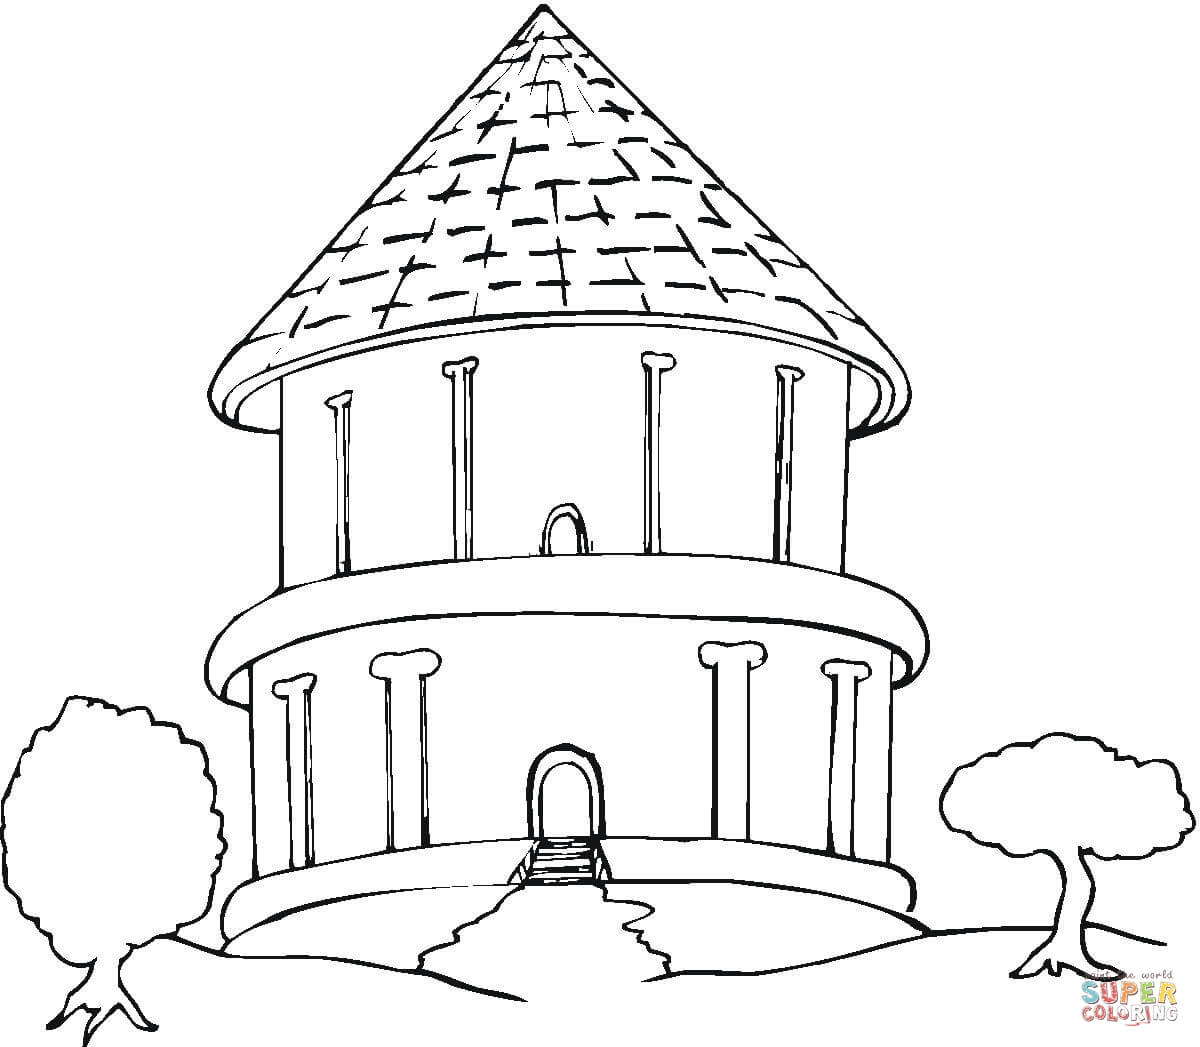 Big Round Bungalow In The Trees Coloring Page